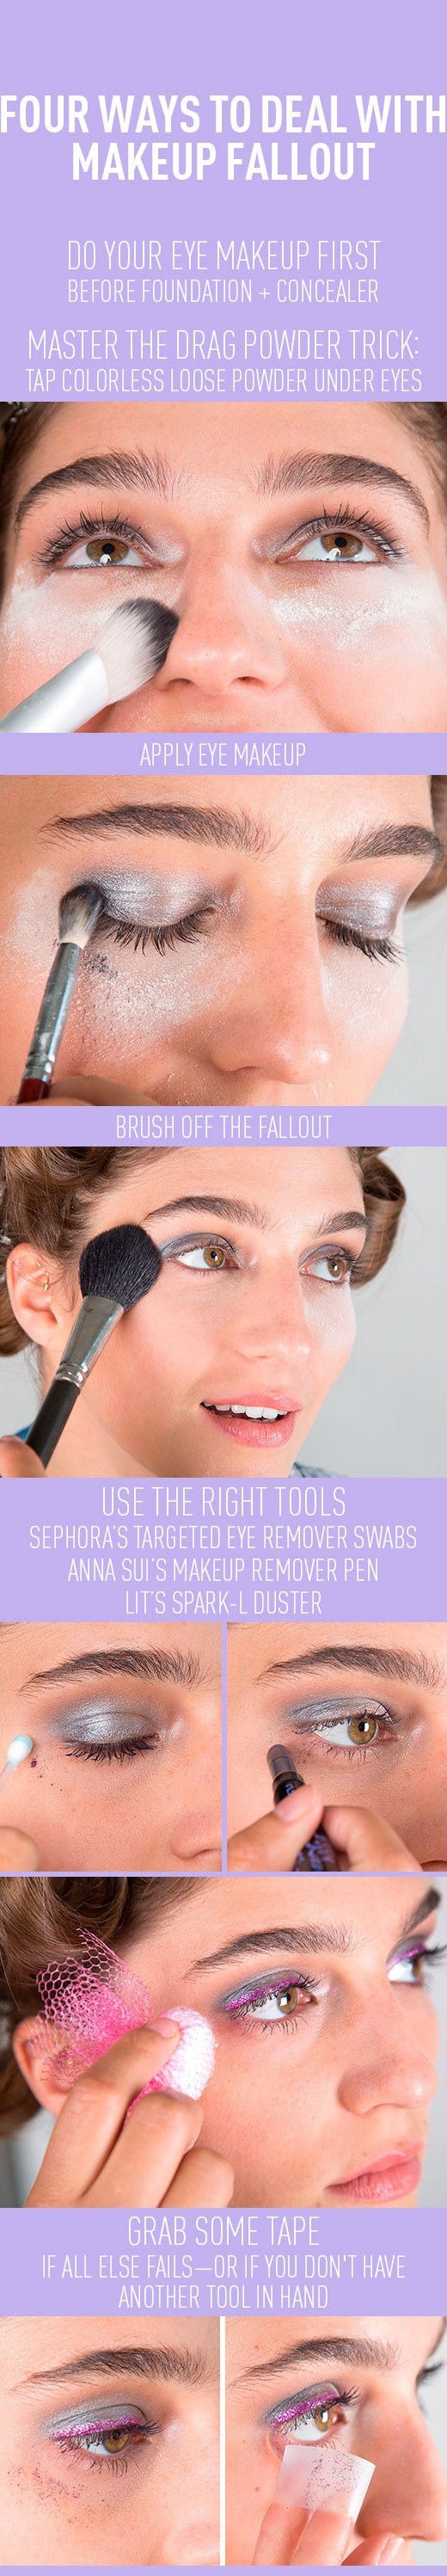 how to deal with makeup fallout